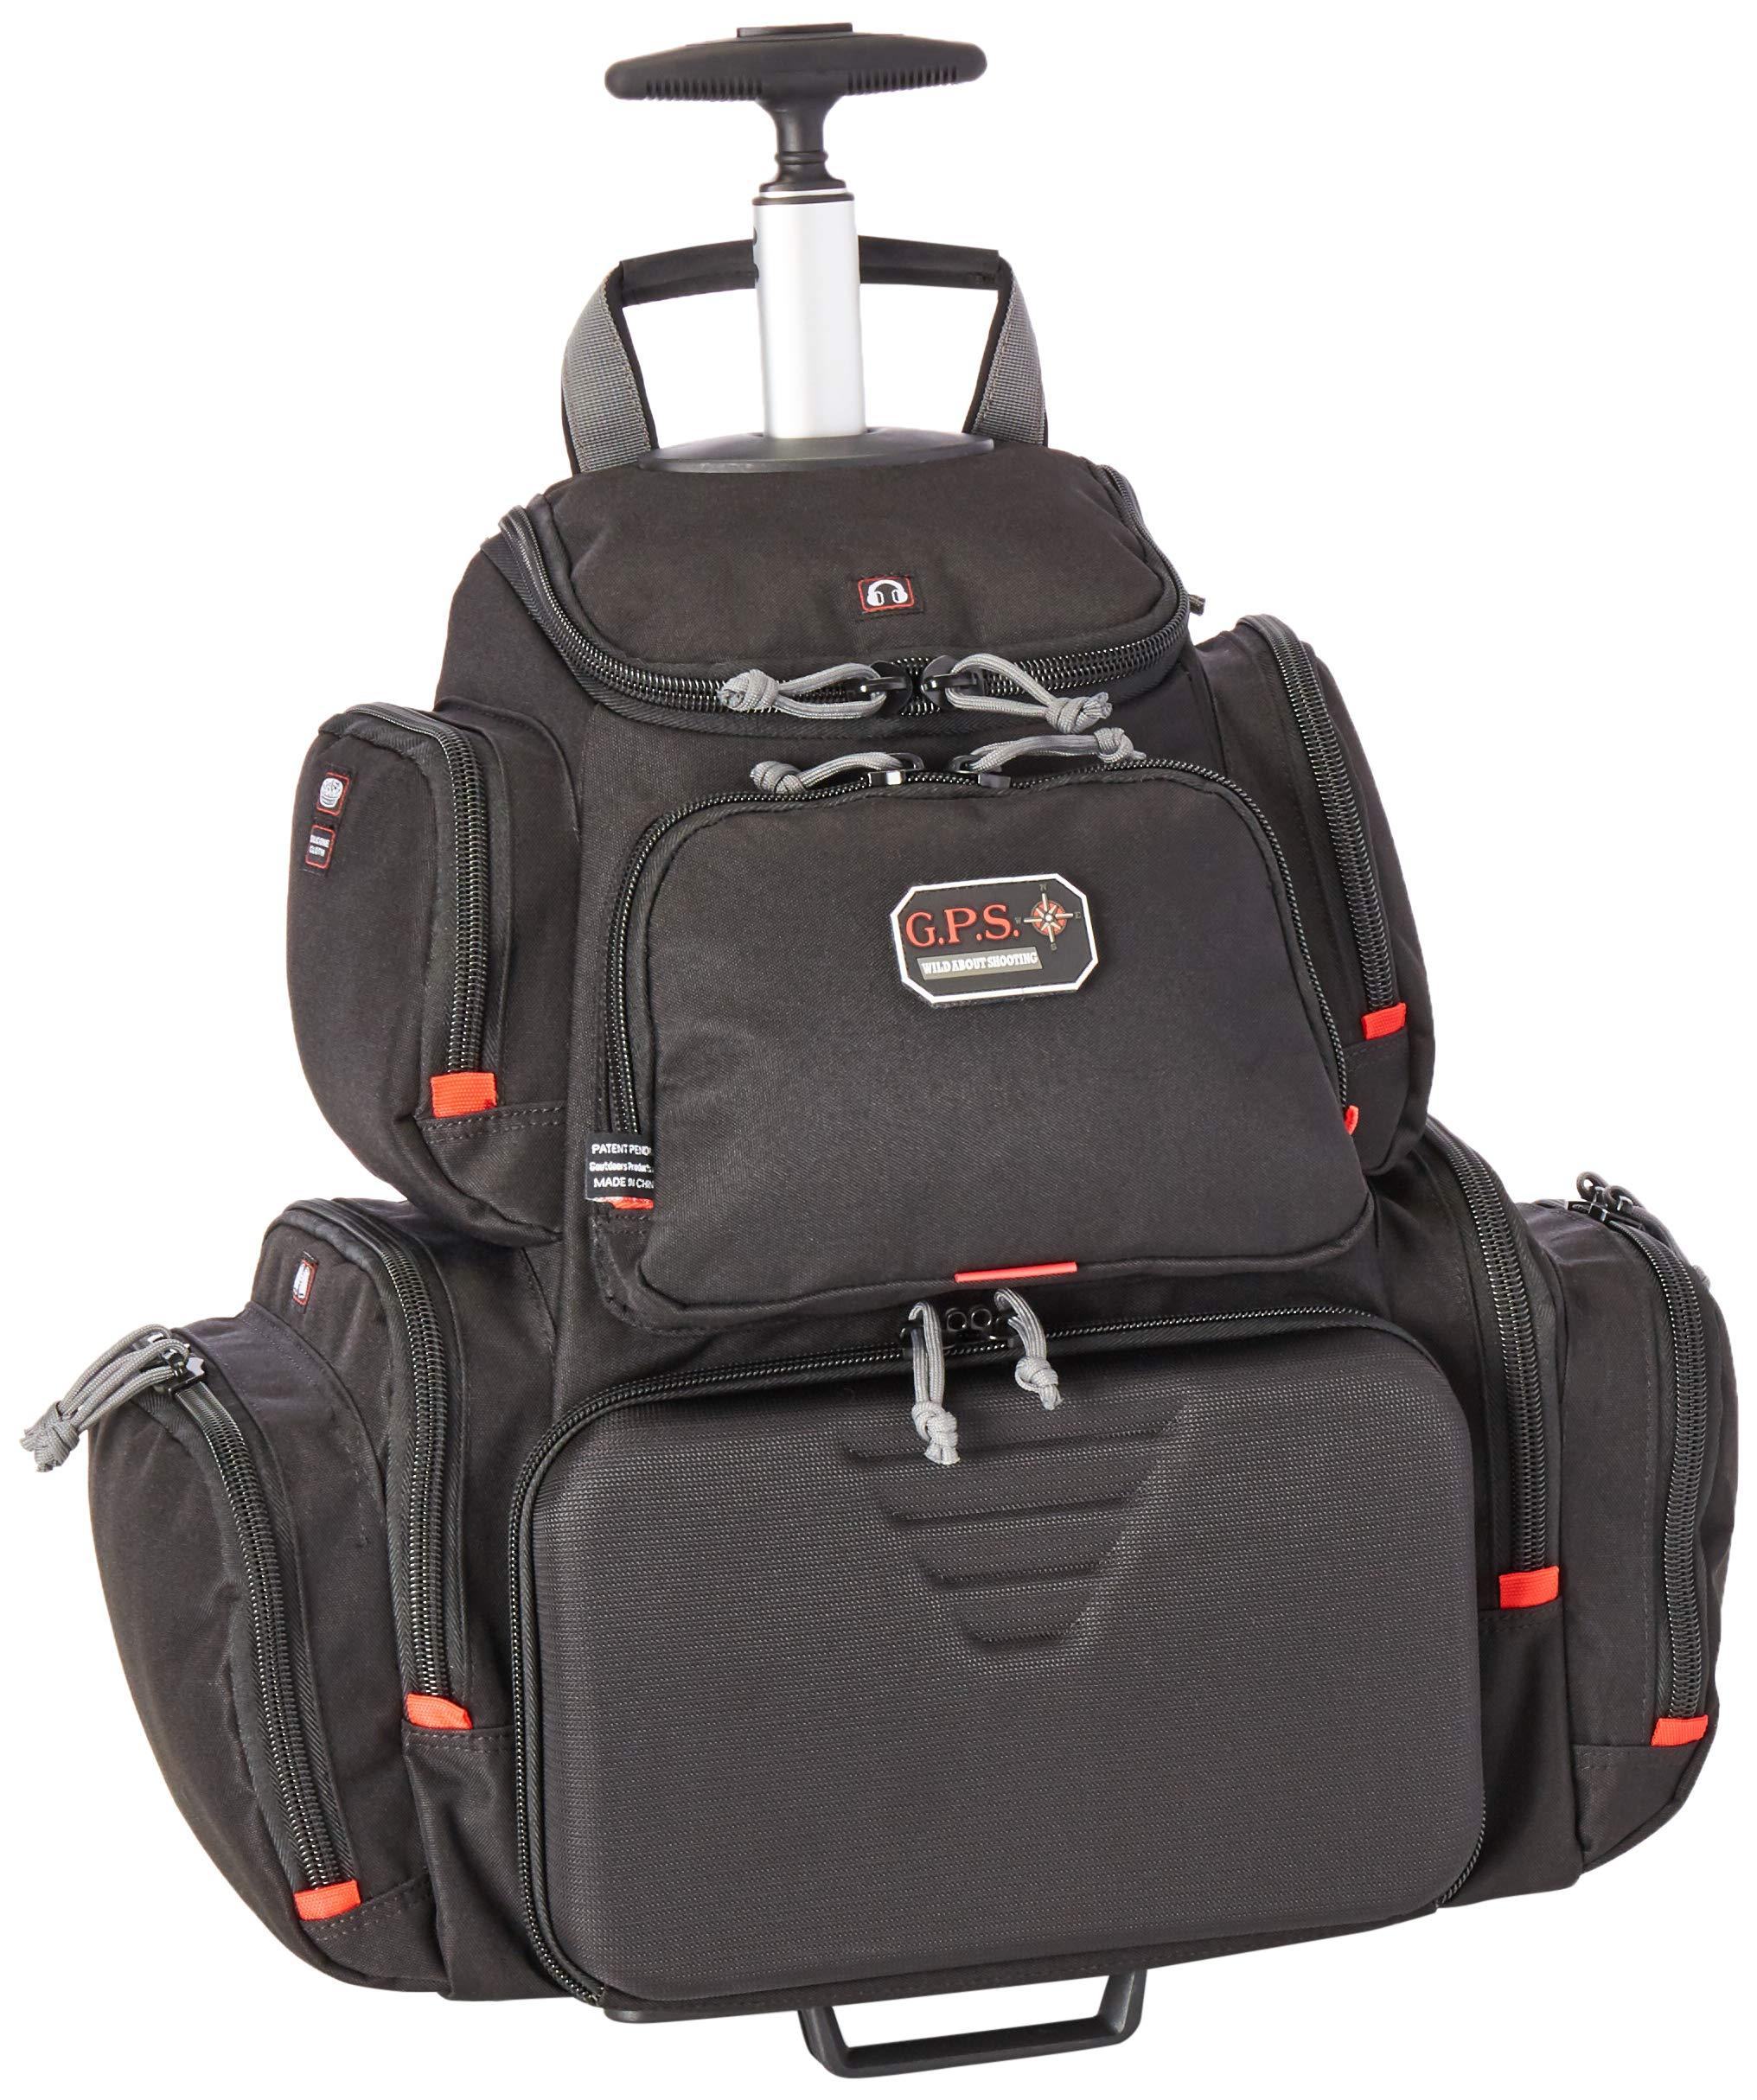 G5 Outdoors G.P.S. GPS-1711ROBP Rolling Handgunner Backpack, Black by G5 Outdoors